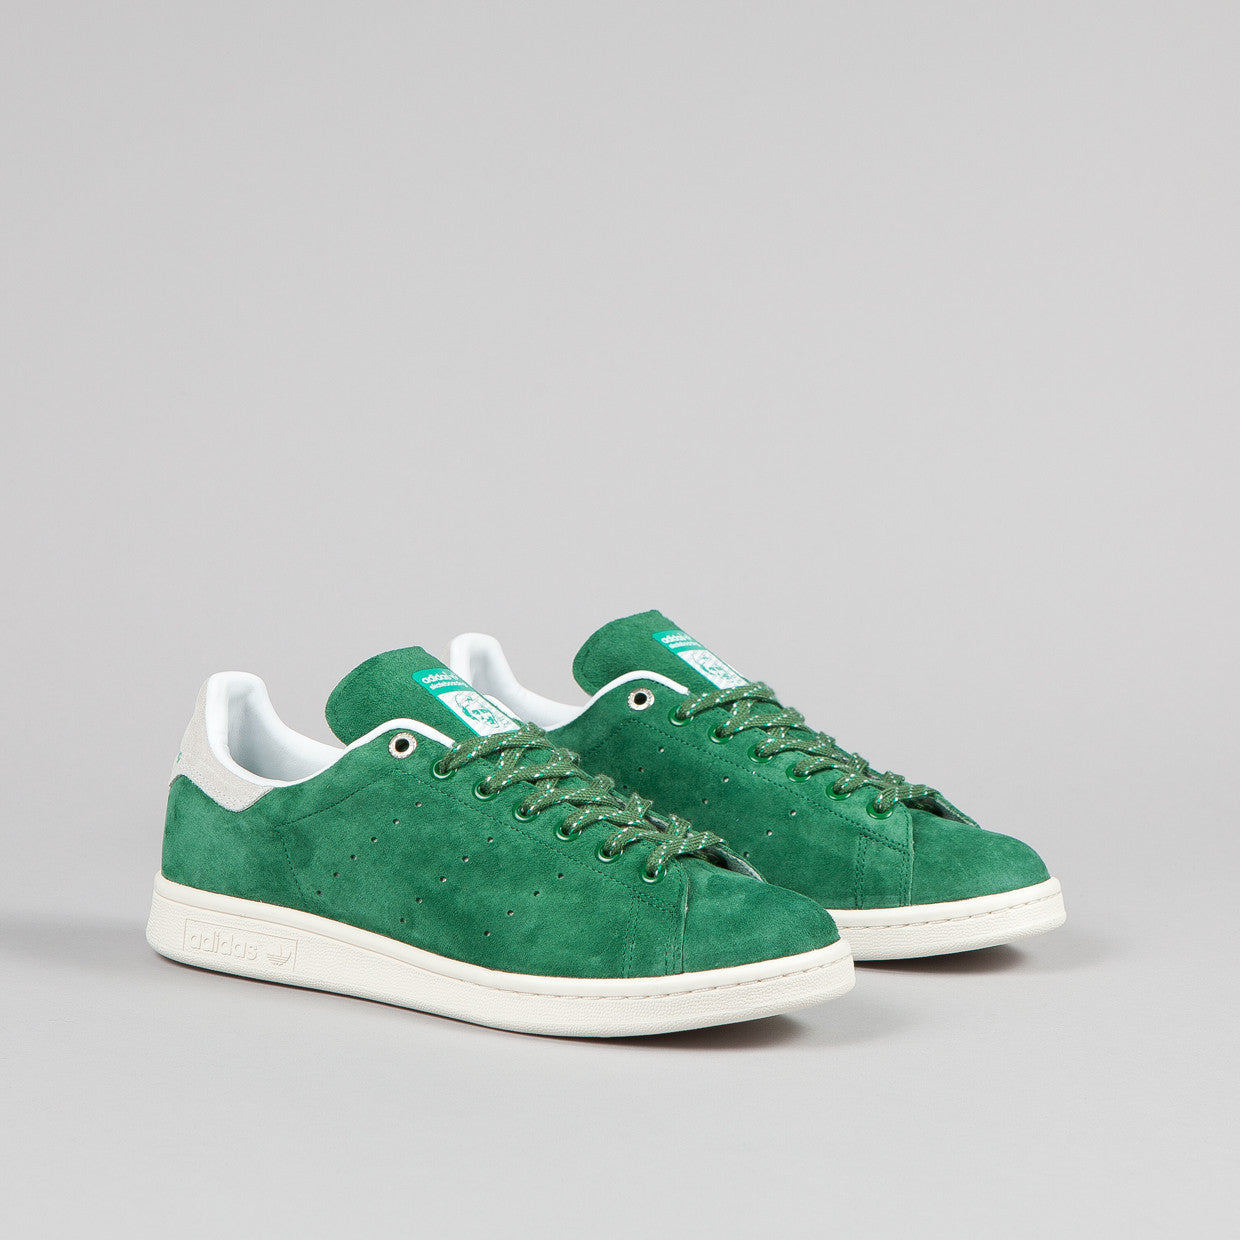 Adidas Stan Smith Skateboarding Amazon Green / Running White / Fern Green